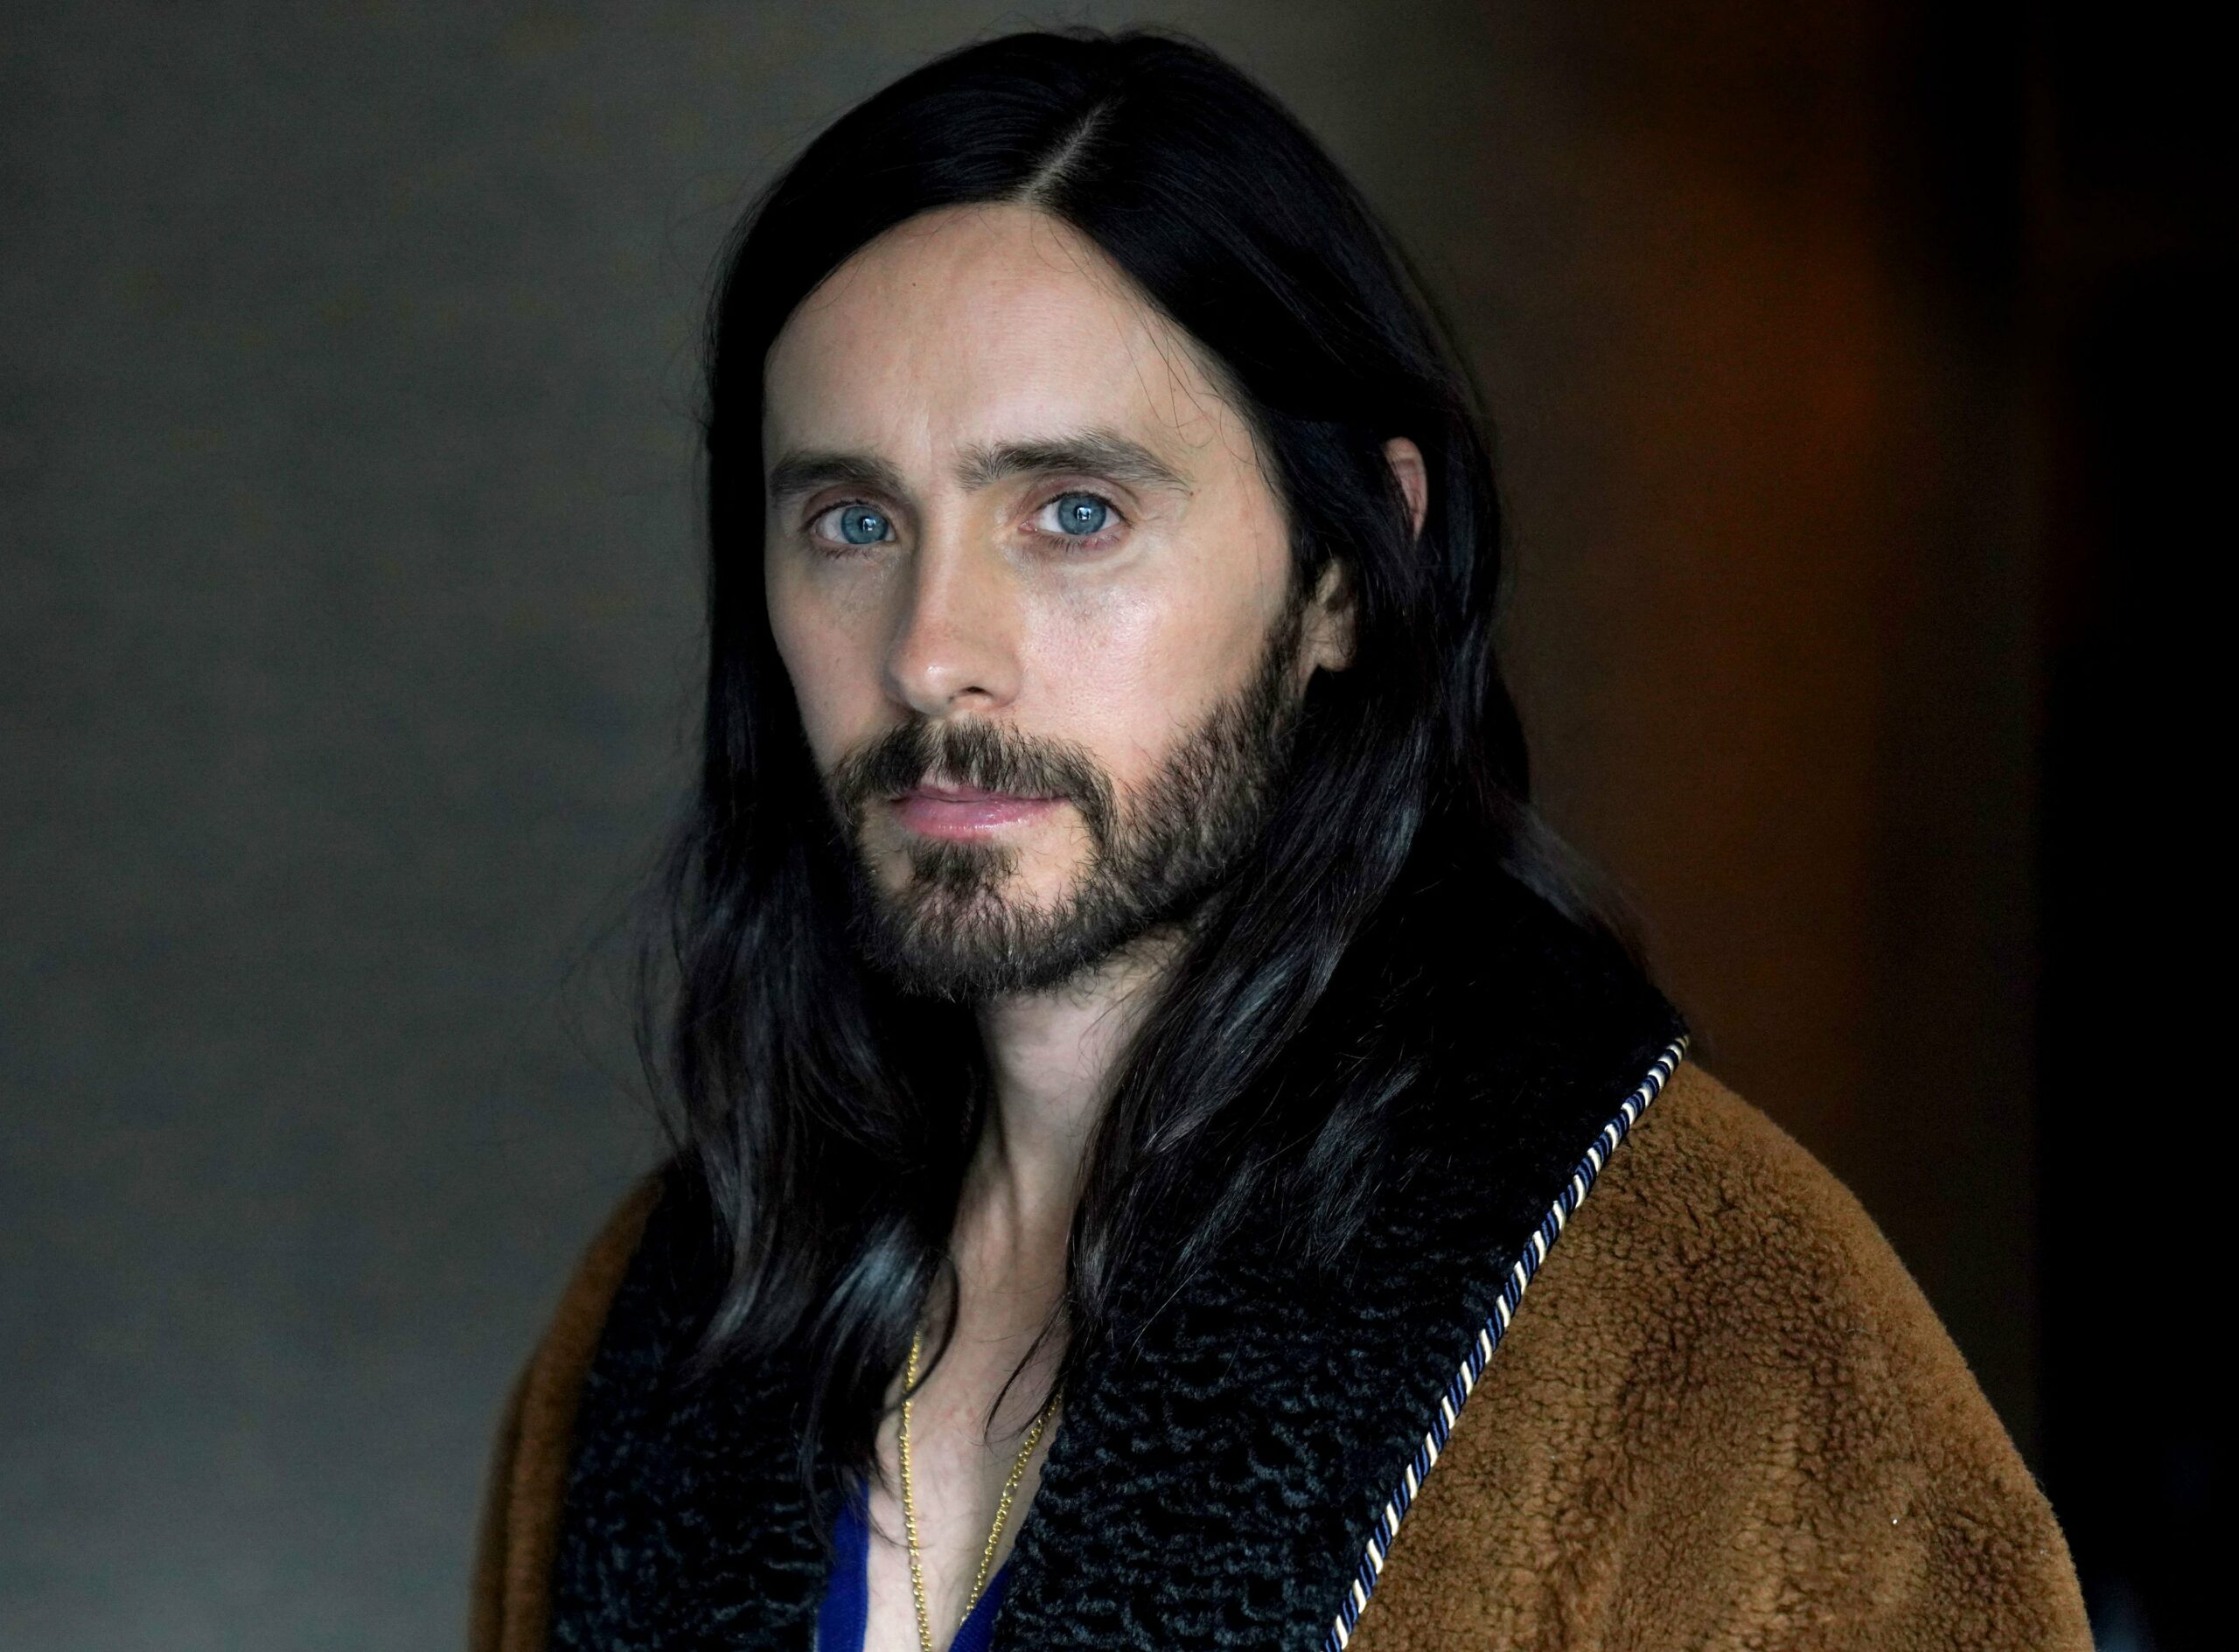 Jared Leto Reveals What's in His Refrigerator With a 'Shelfie'